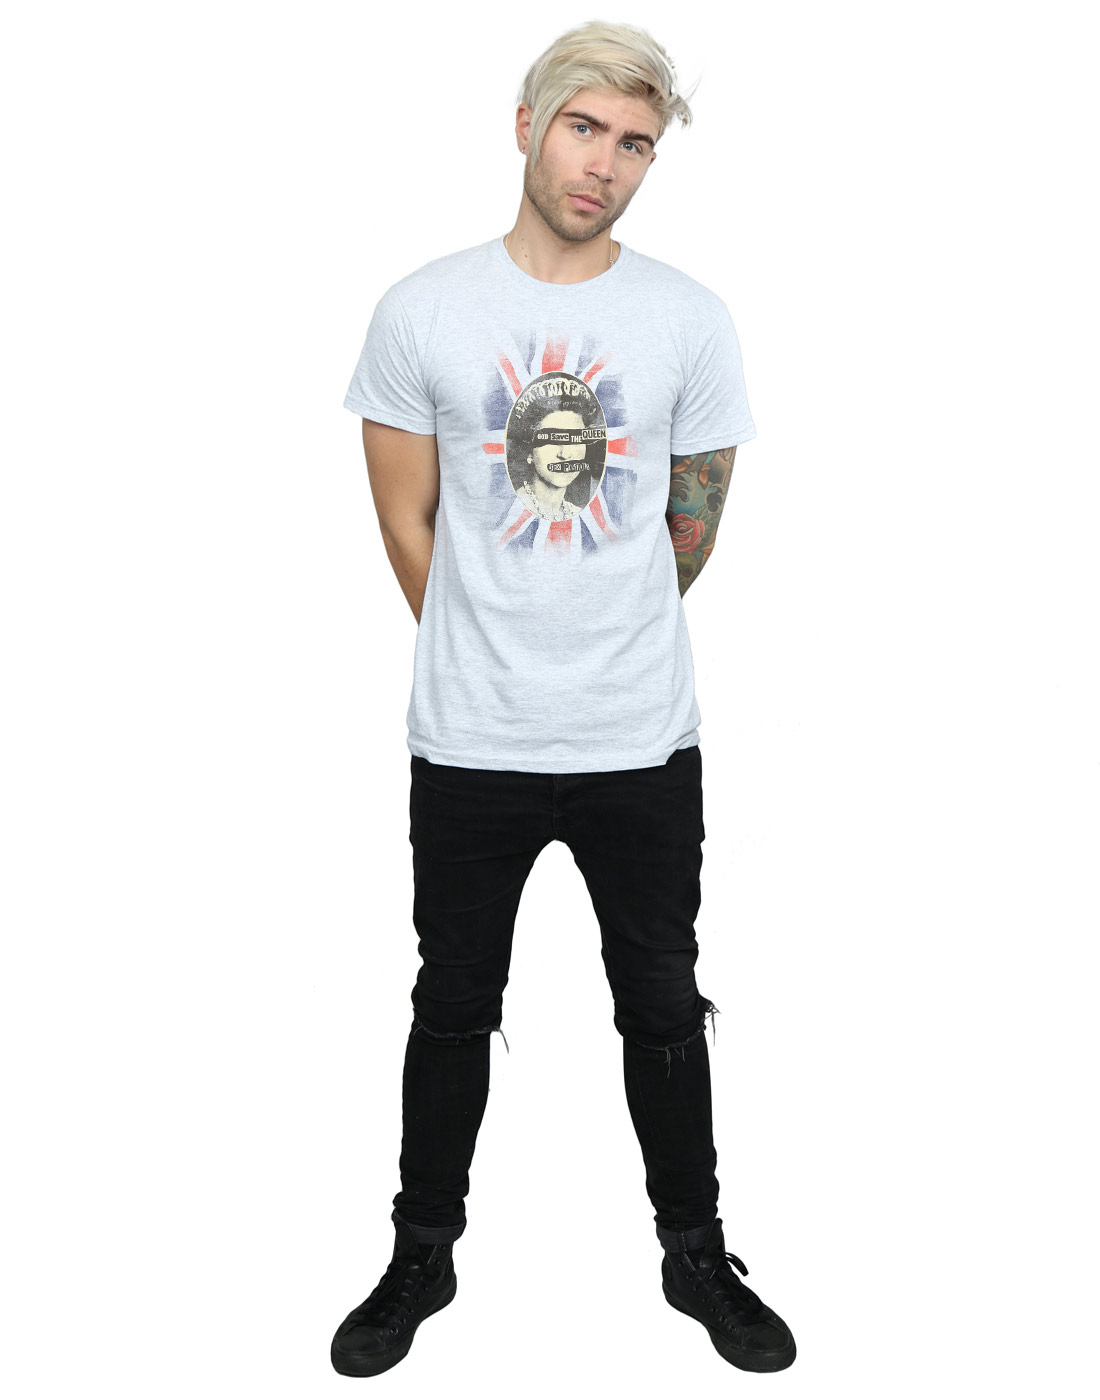 SEX-Pistols-UOMO-GOD-SAVE-THE-QUEEN-t-shirt miniatura 15